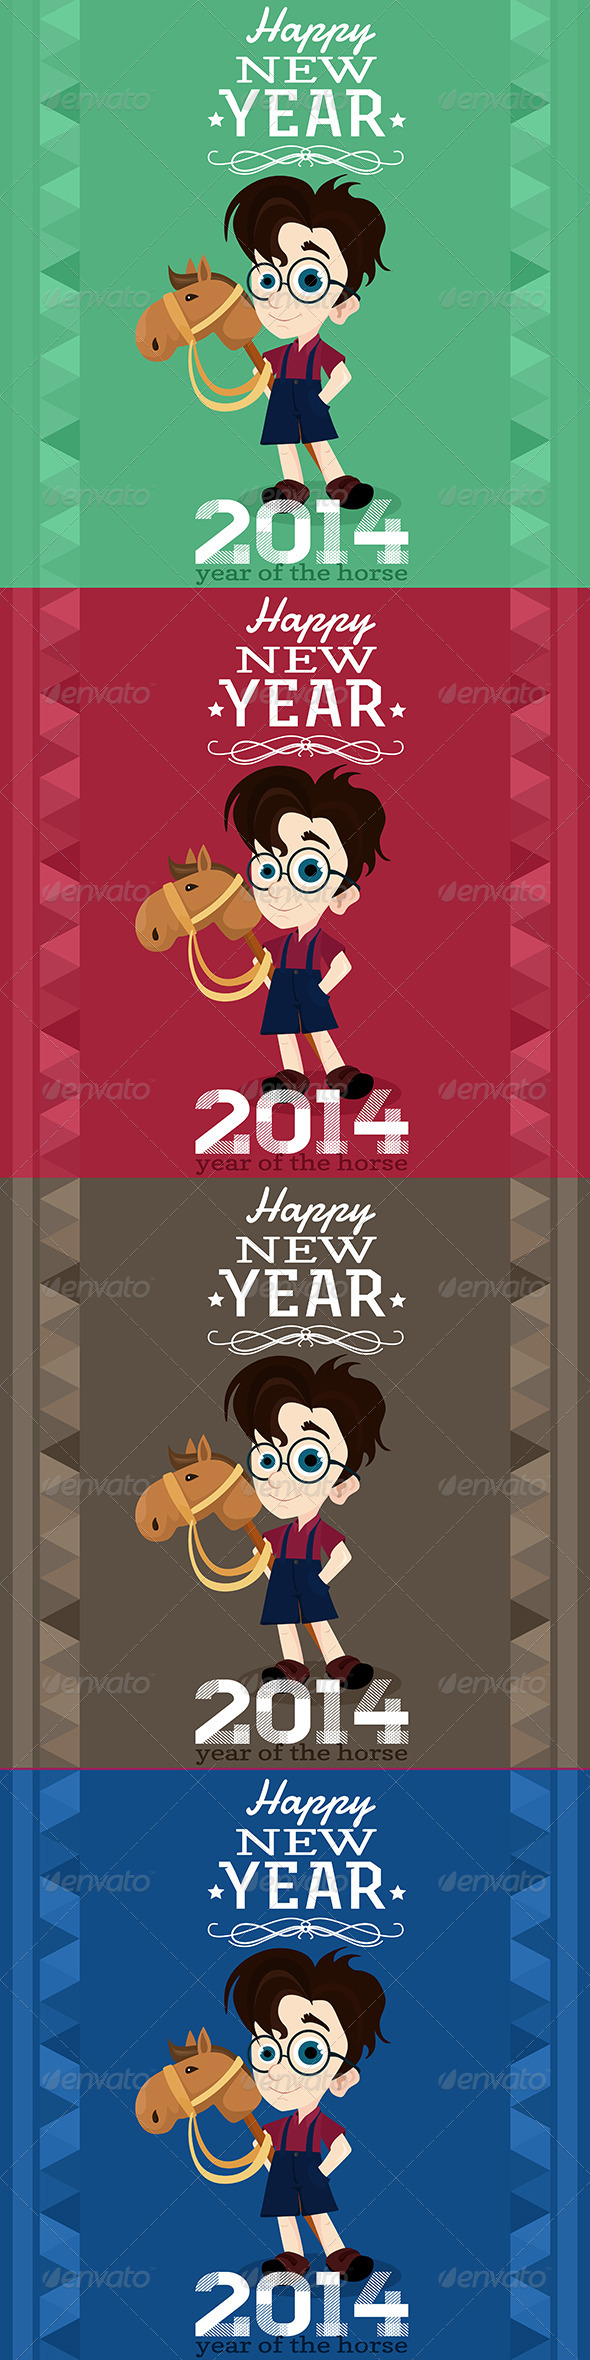 2014 Greeting Card, Year of the Horse